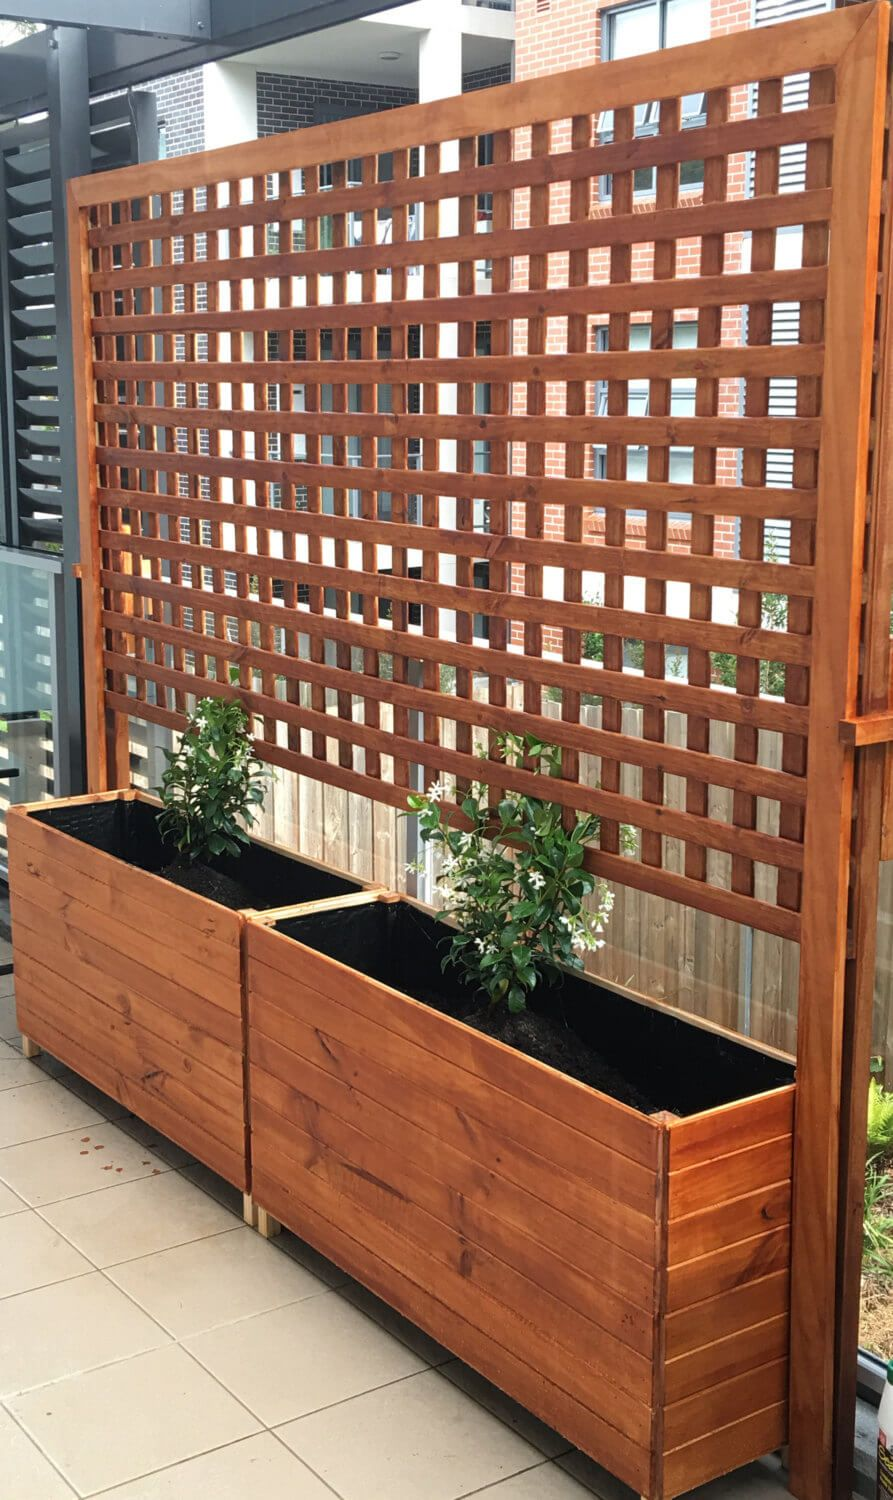 33 beautiful built in planter ideas to upgrade your for Privacy planters for decks